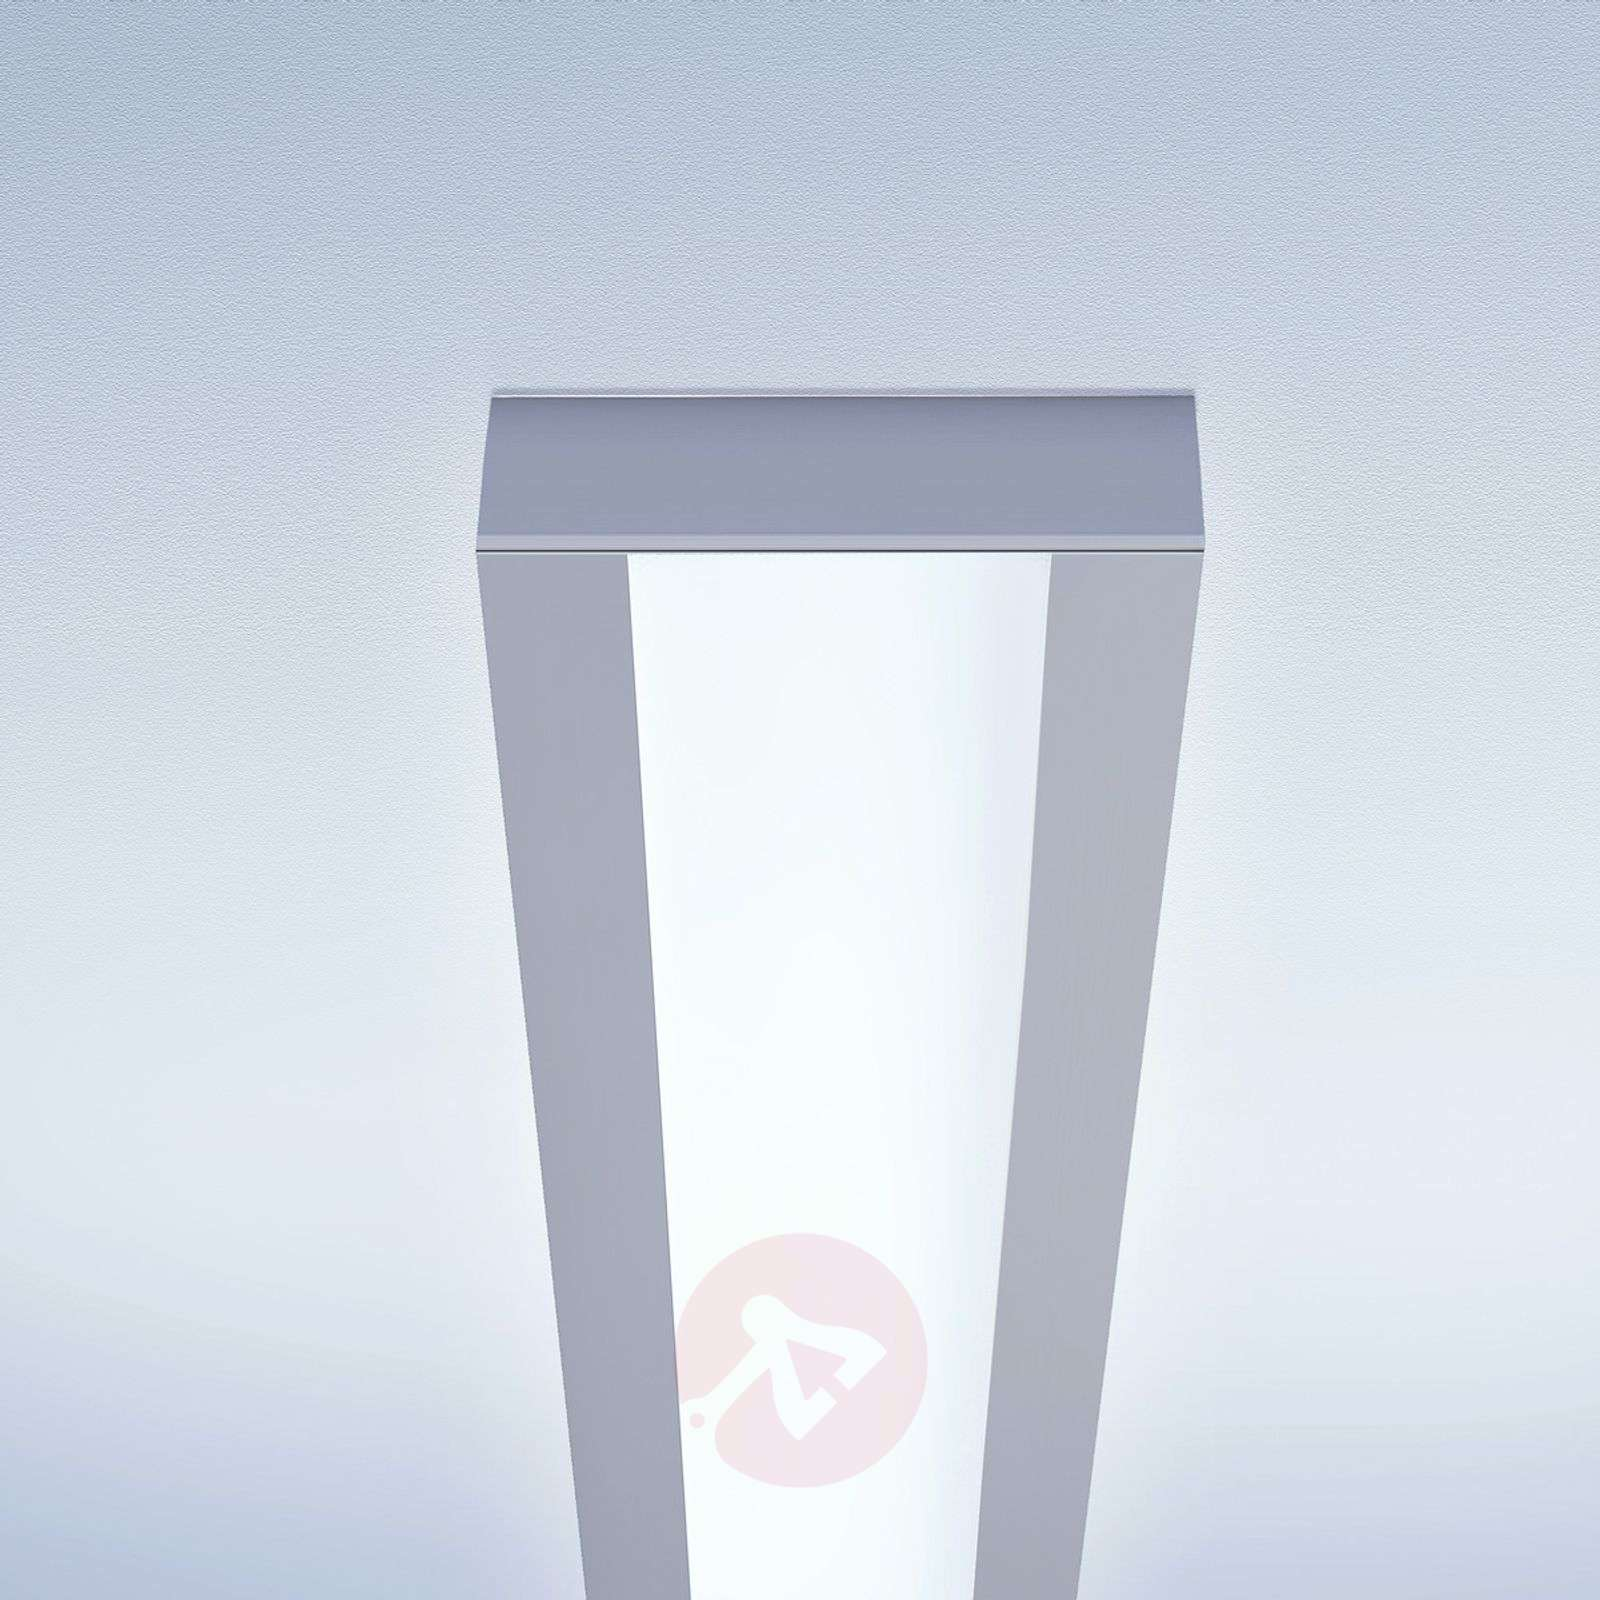 Vision-A2 LED surface-mounted ceiling light-6033508X-01